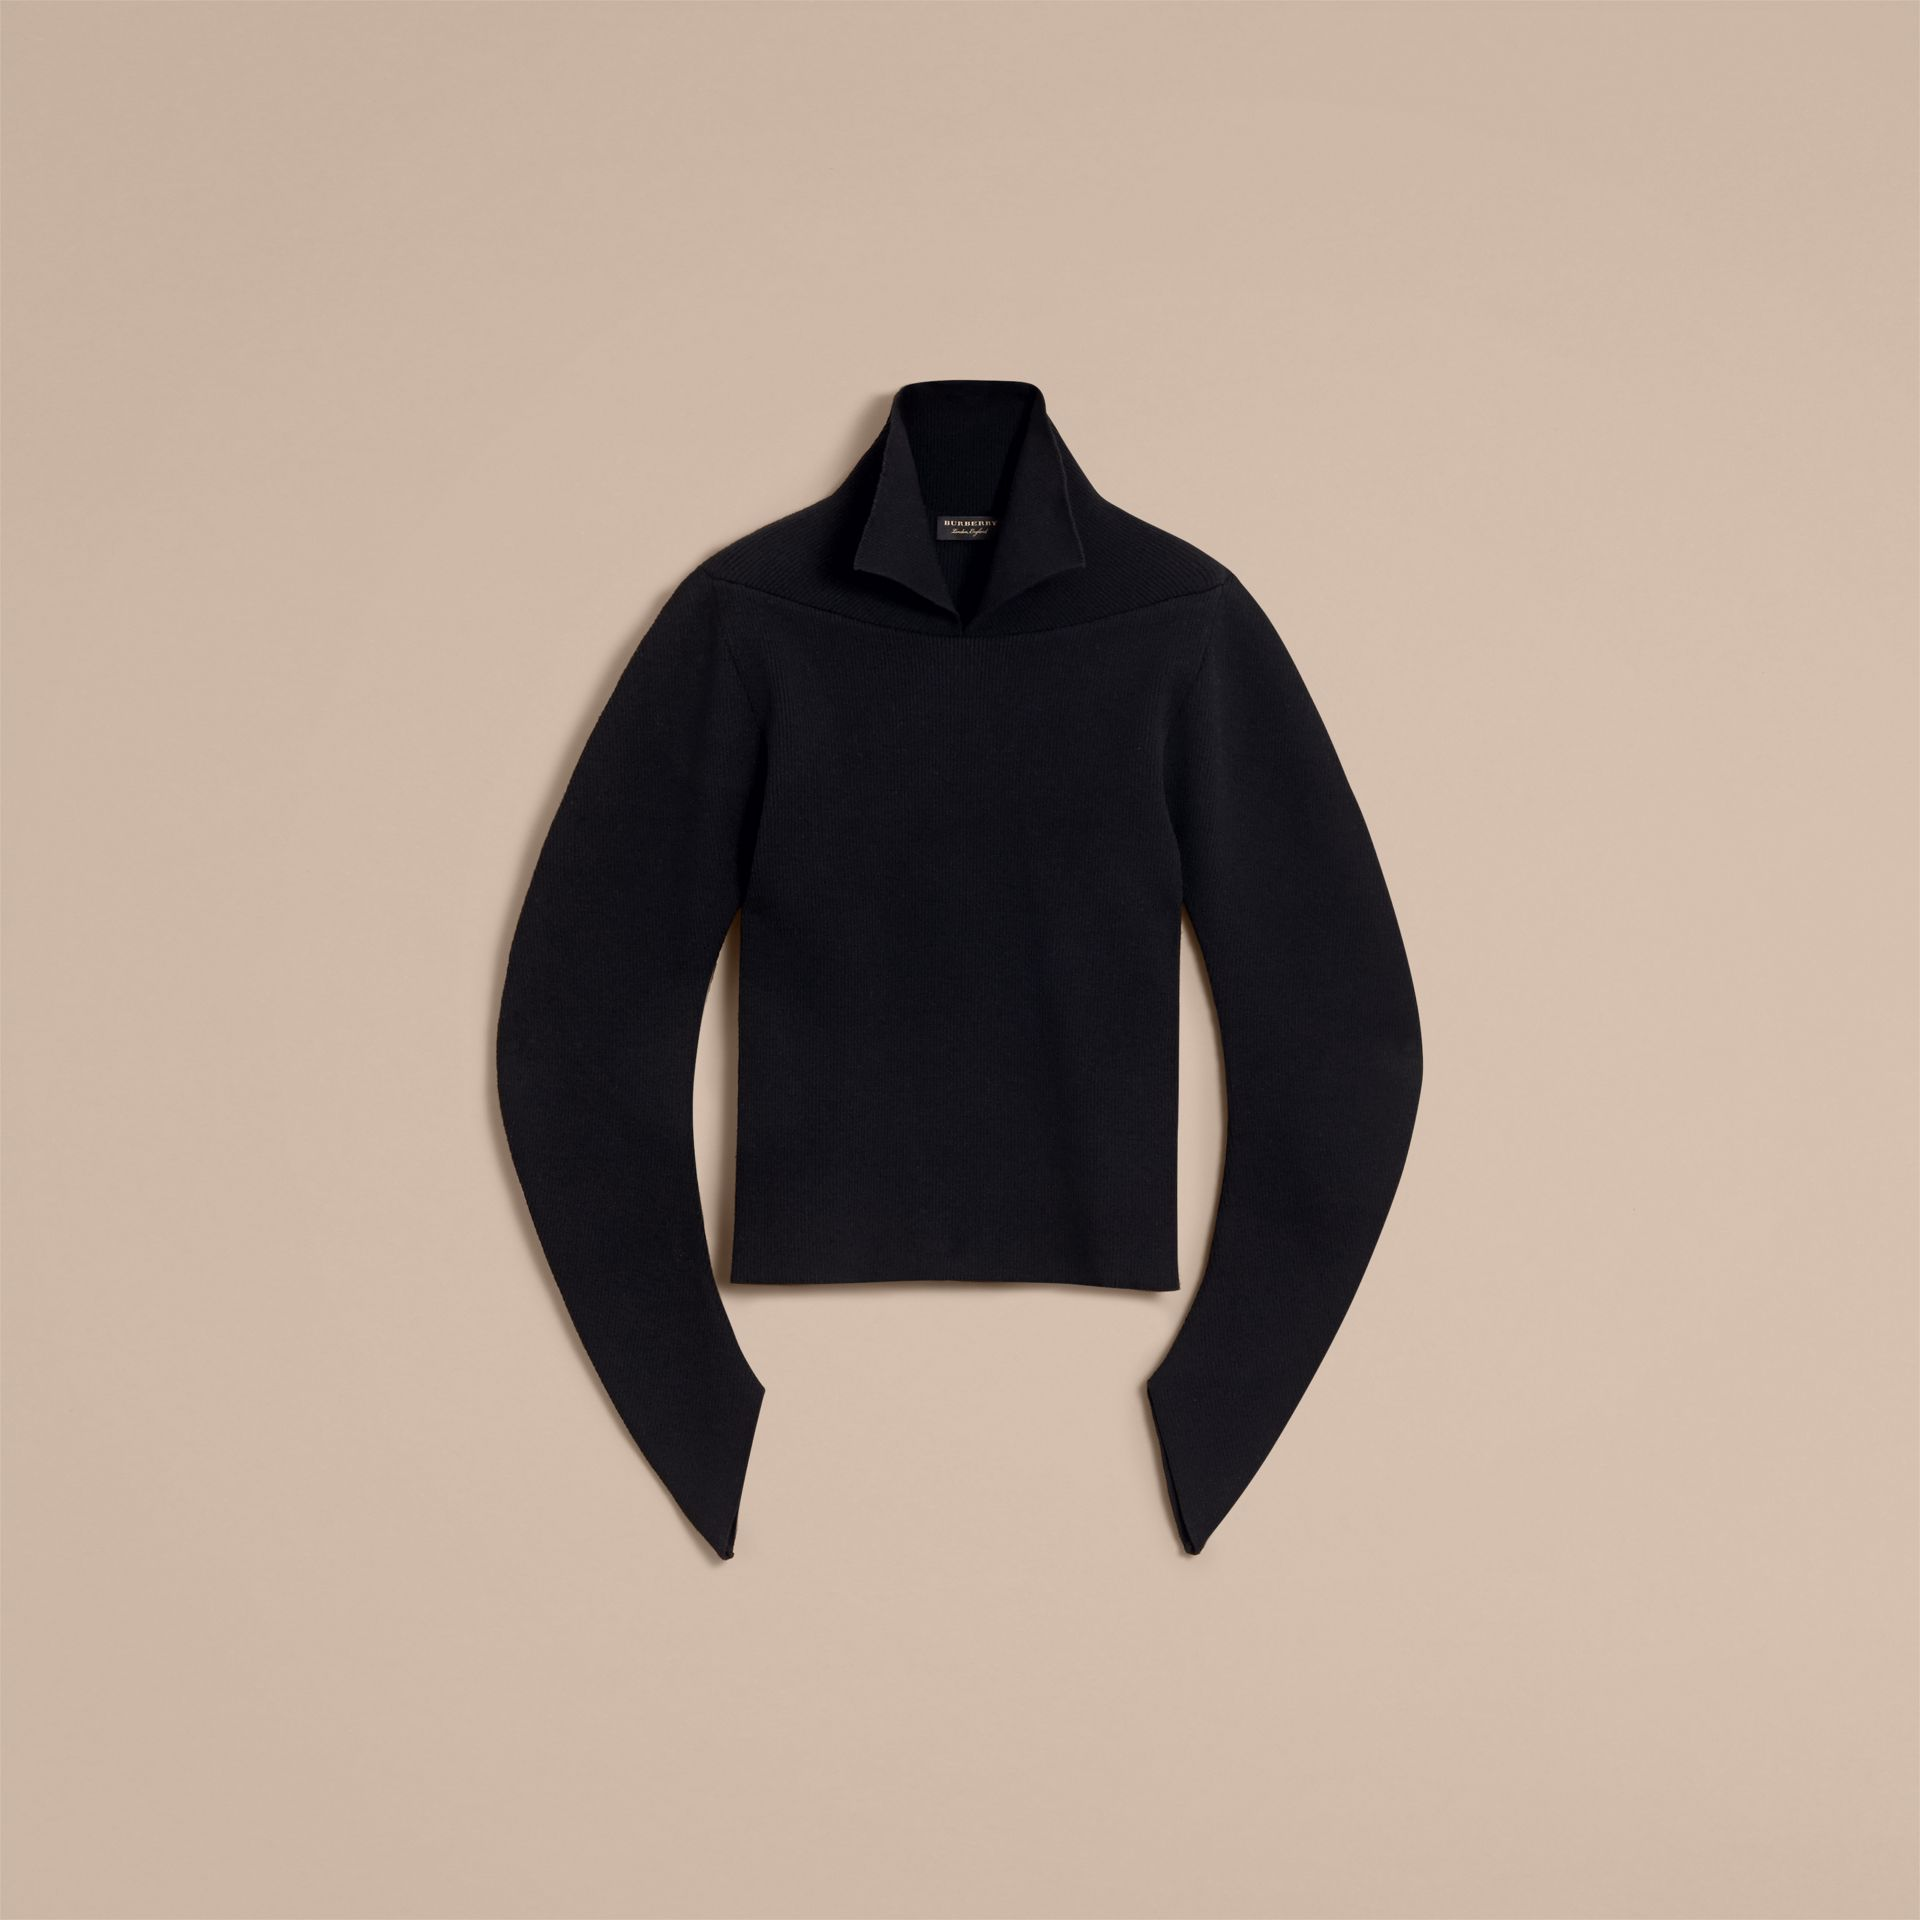 Rib Knit Compact Wool Blend Sculptural Sweater - Men | Burberry Australia - gallery image 4